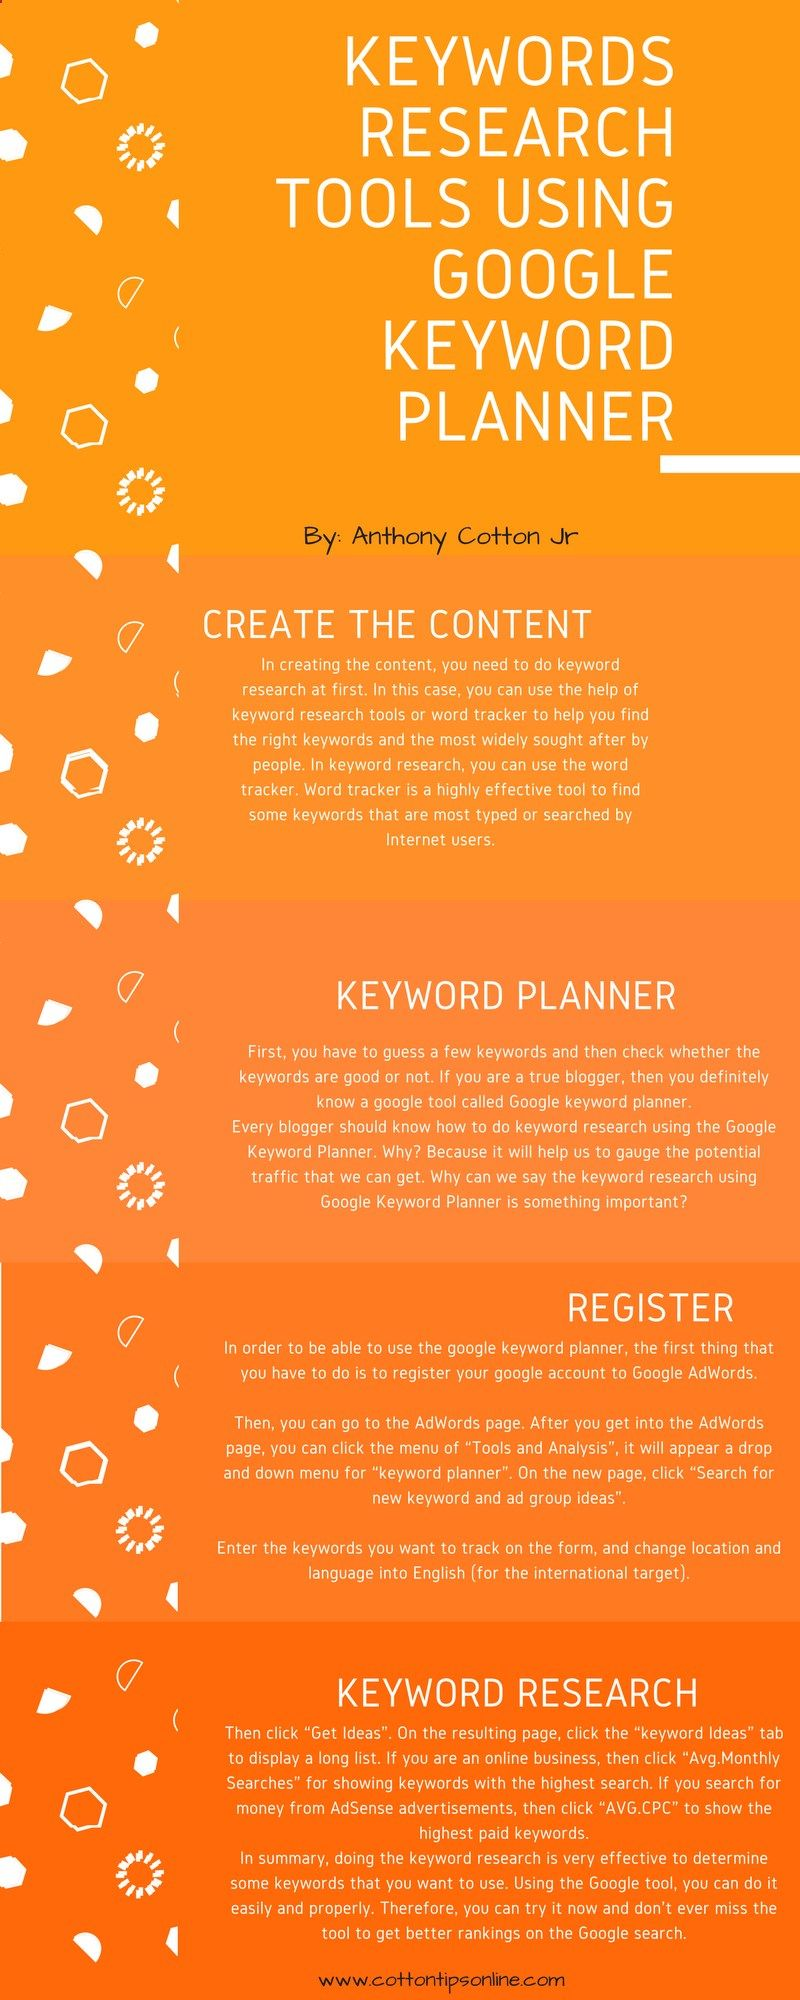 Taking advantage of Keywords Research Tools by using Google Keyword Planner. Having a paid website can be your own pride. However, when you create a website, you should be ready to fill your website with contents.